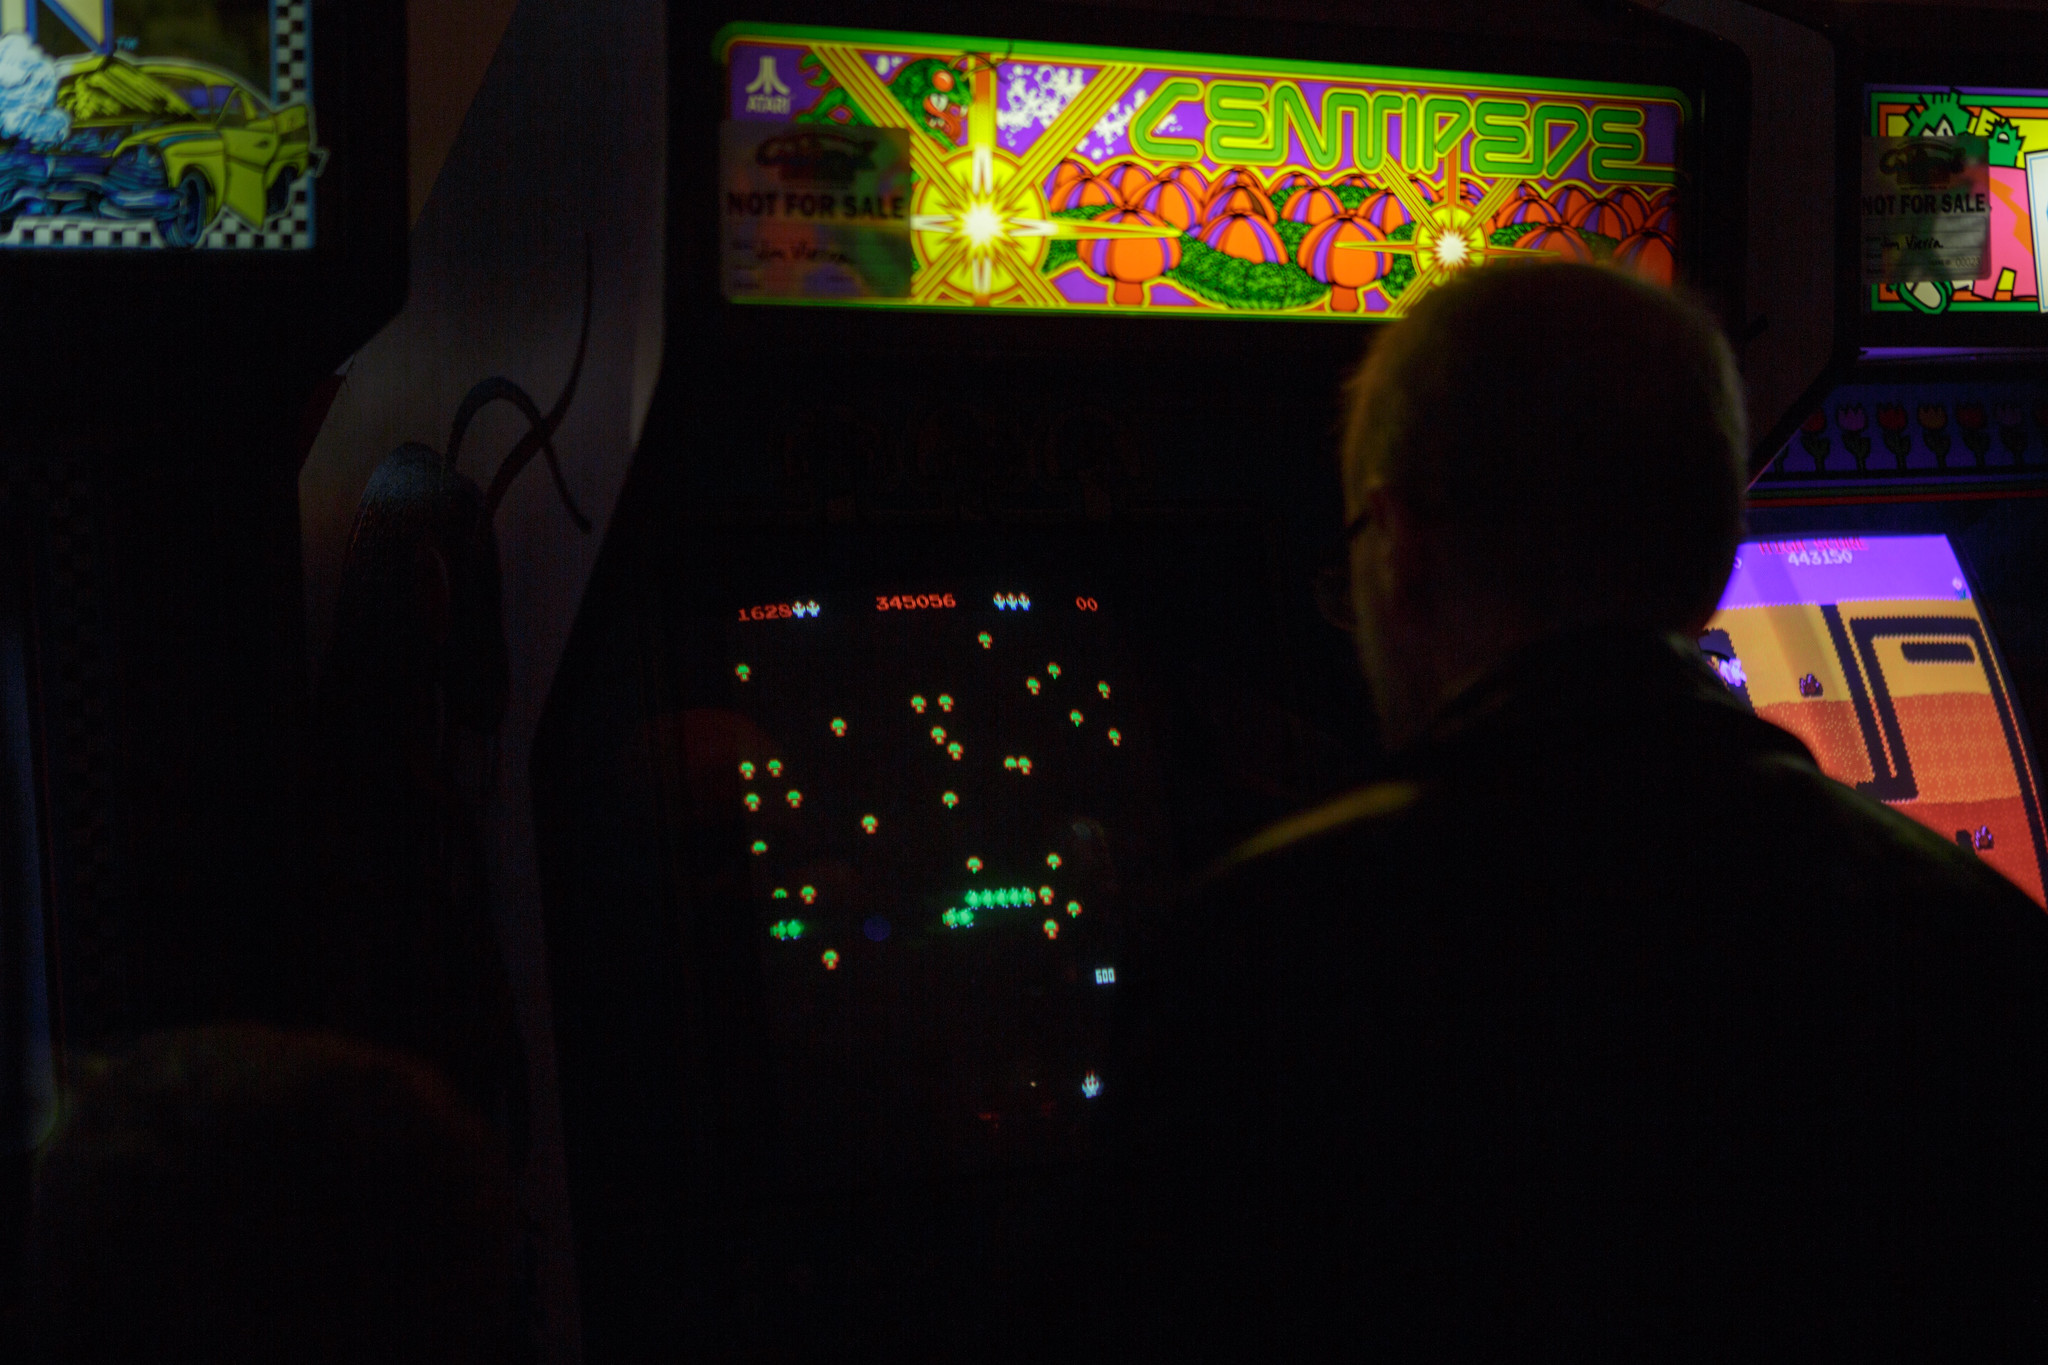 Someone playing Centipede in a dark arcade